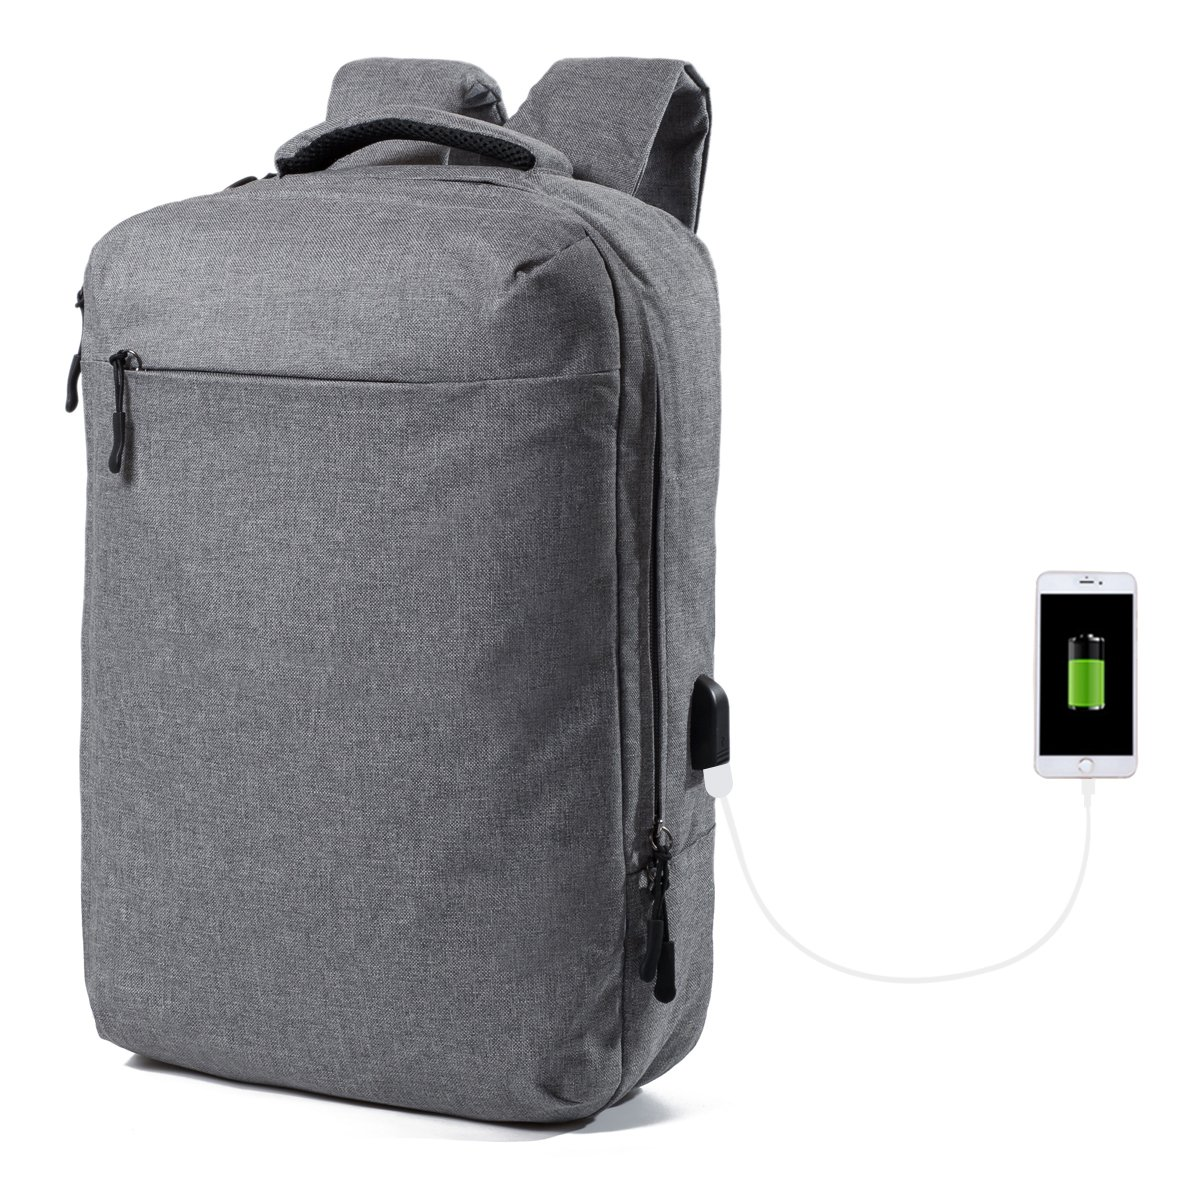 Backpack with usb Charging Port In Cipher Lightweight Travel Backpack College School Bag Rucksack Large Capacity Business Bags Fits up to 15.6 Inch Laptop (Grey) cheap